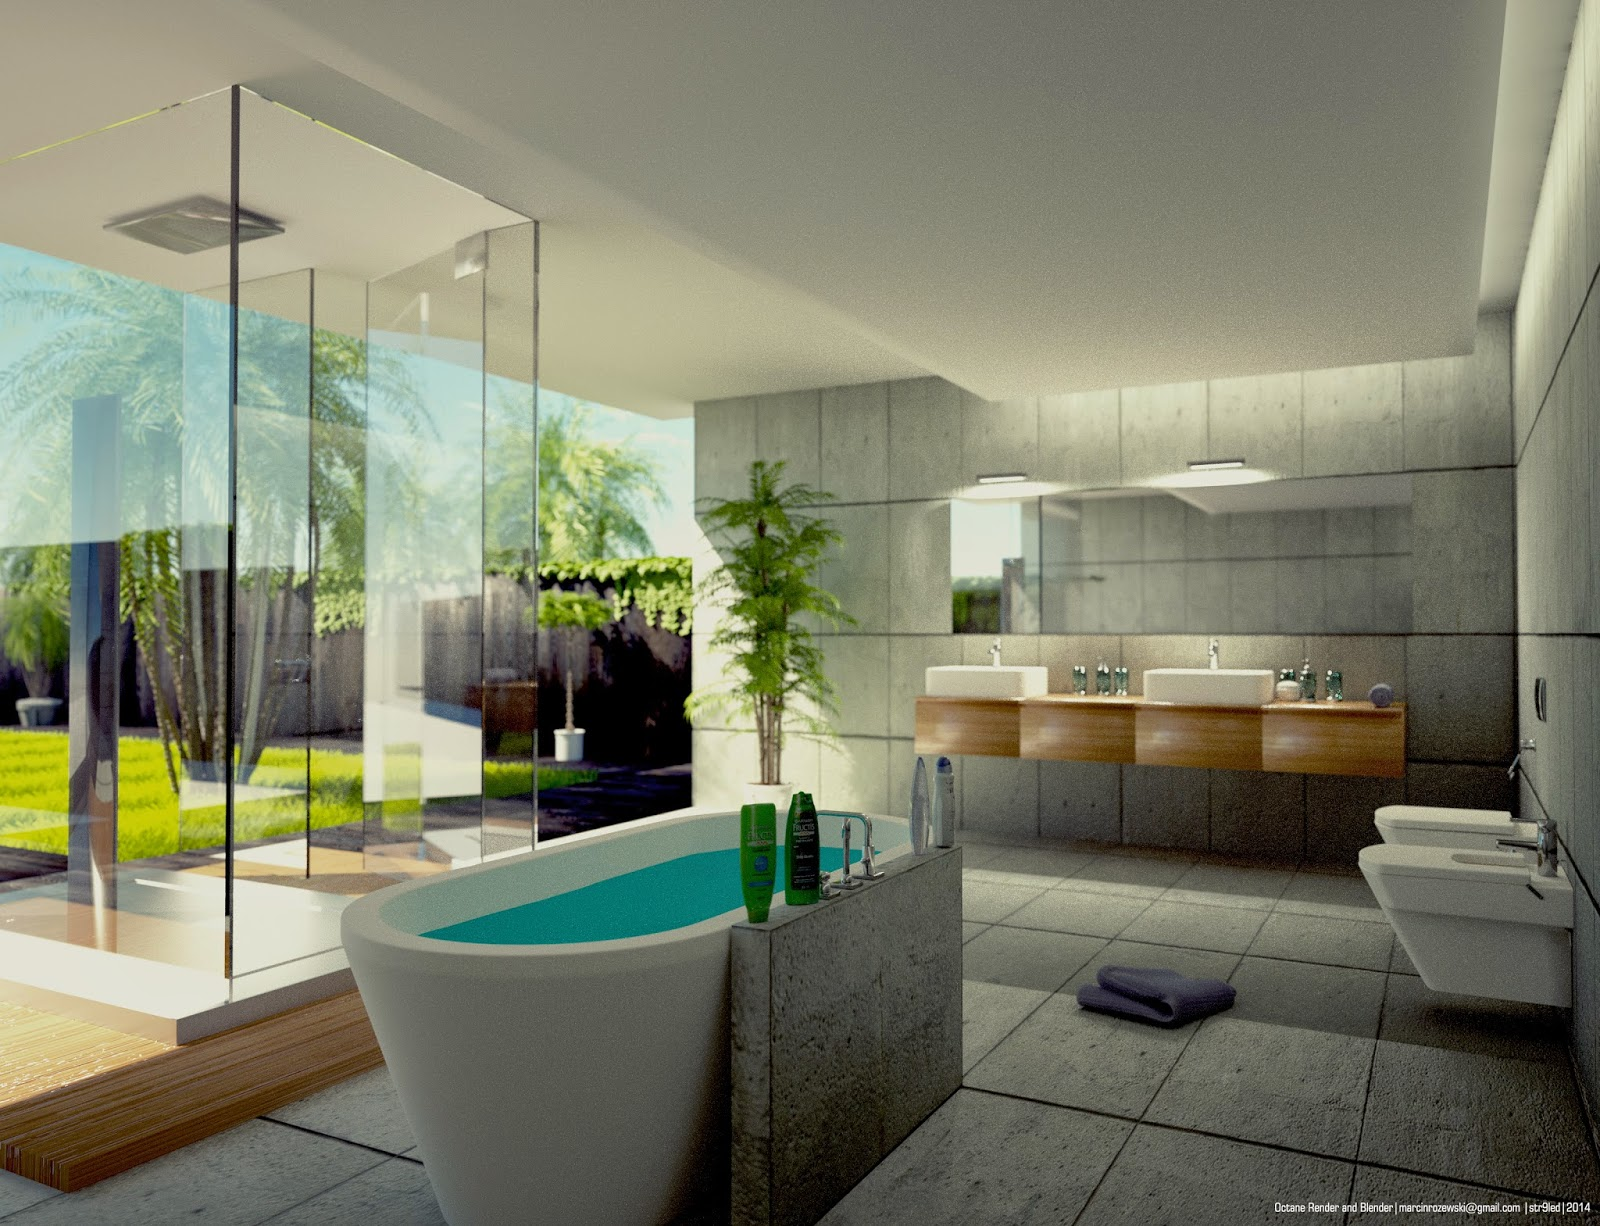 Bathroom octane render and blender architectural rendering for Bathroom design 3d model